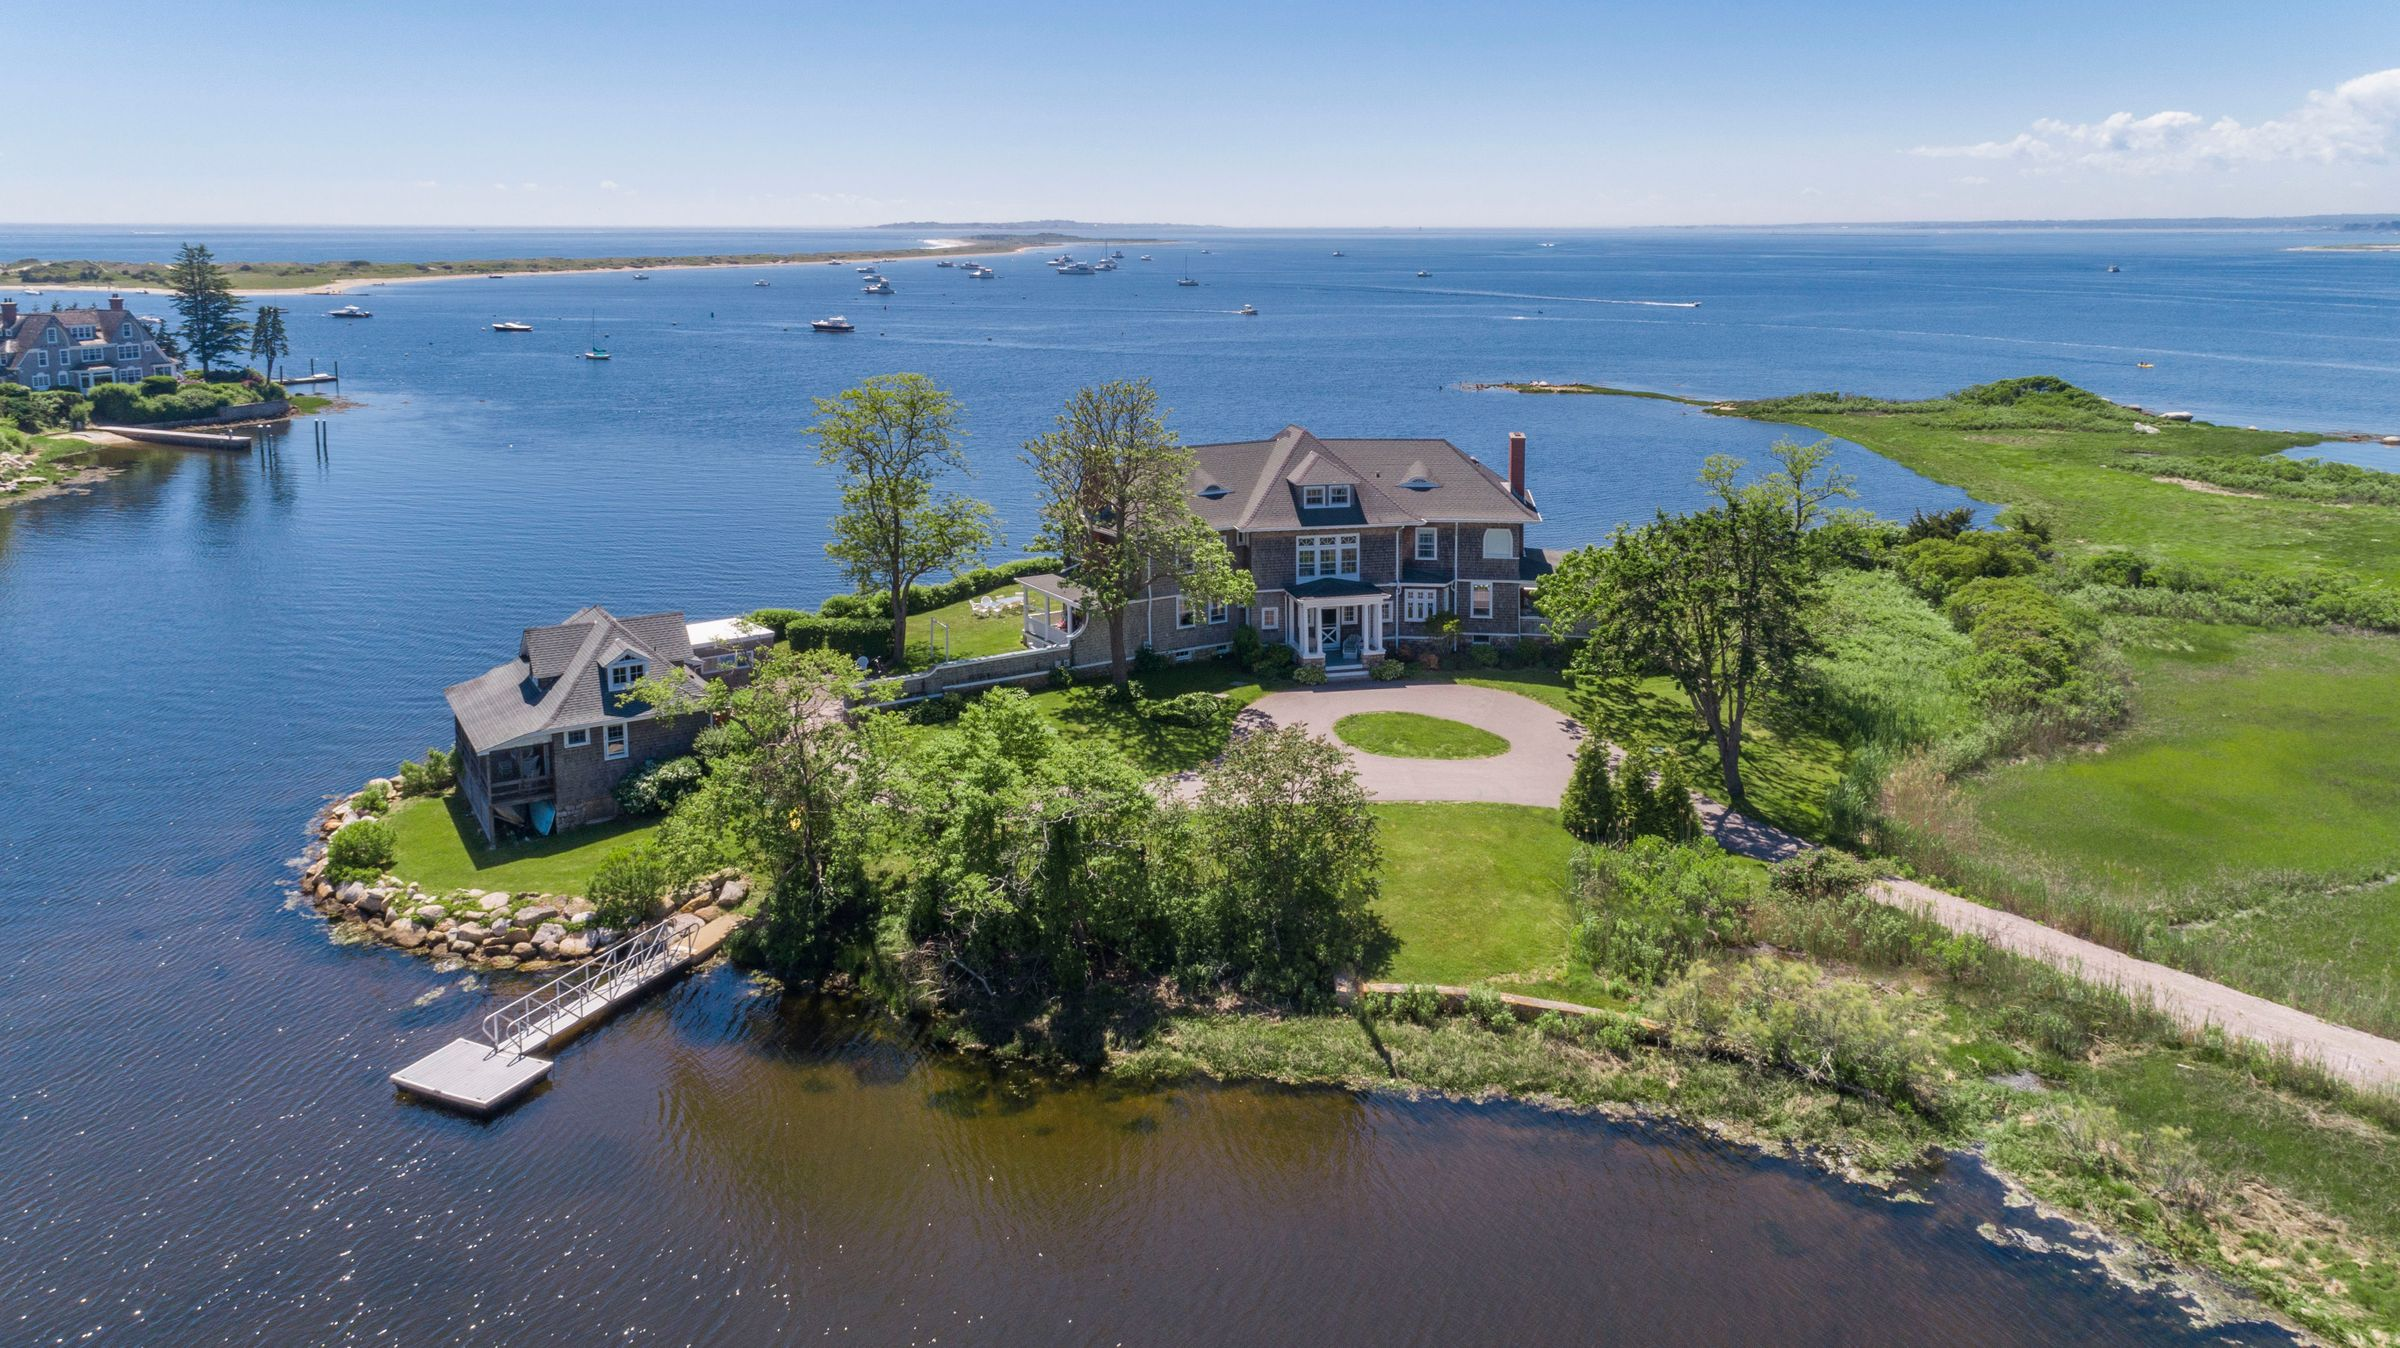 Watch Hill Estate on Private Peninsula Sells for $7.75M with Lori Joyal Representing Both Sides of the Transaction